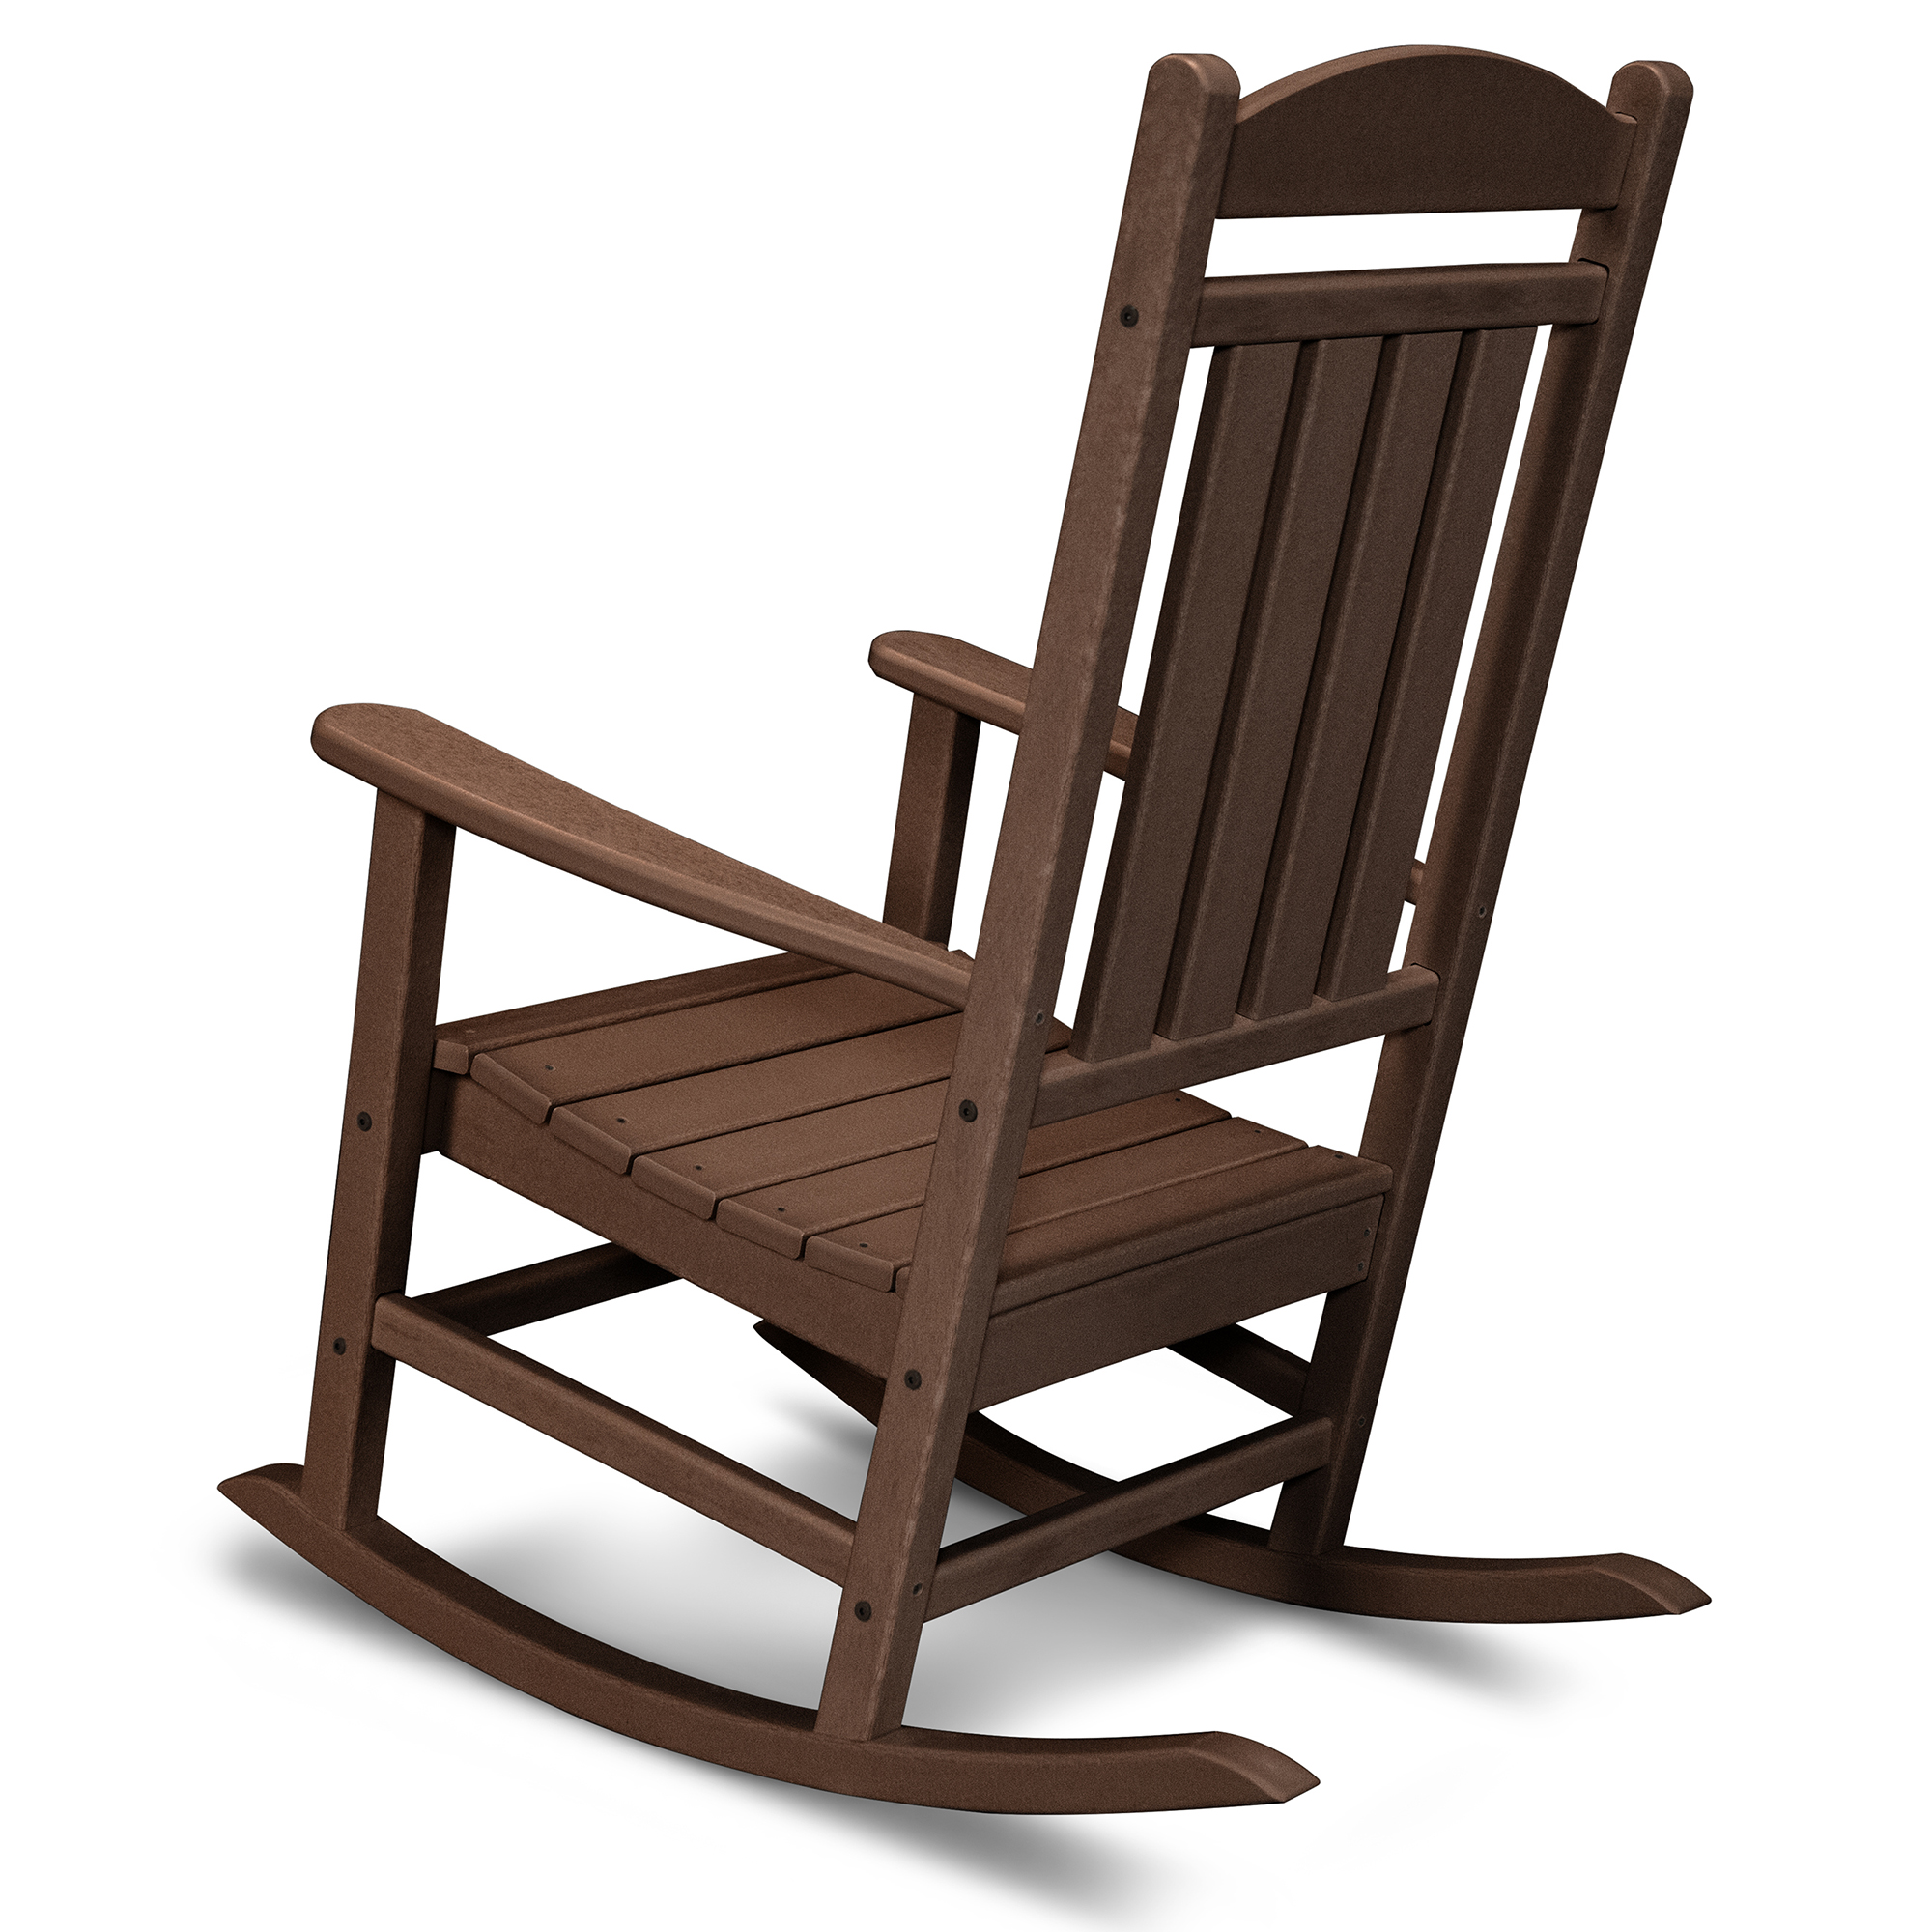 Outdoor rocking chairs - Polywood Reg All Weather Presidential Rocker Home Furniture Outdoor Furniture Rocking Chairs Cracker Barrel Old Country Store Cracker Barrel Old